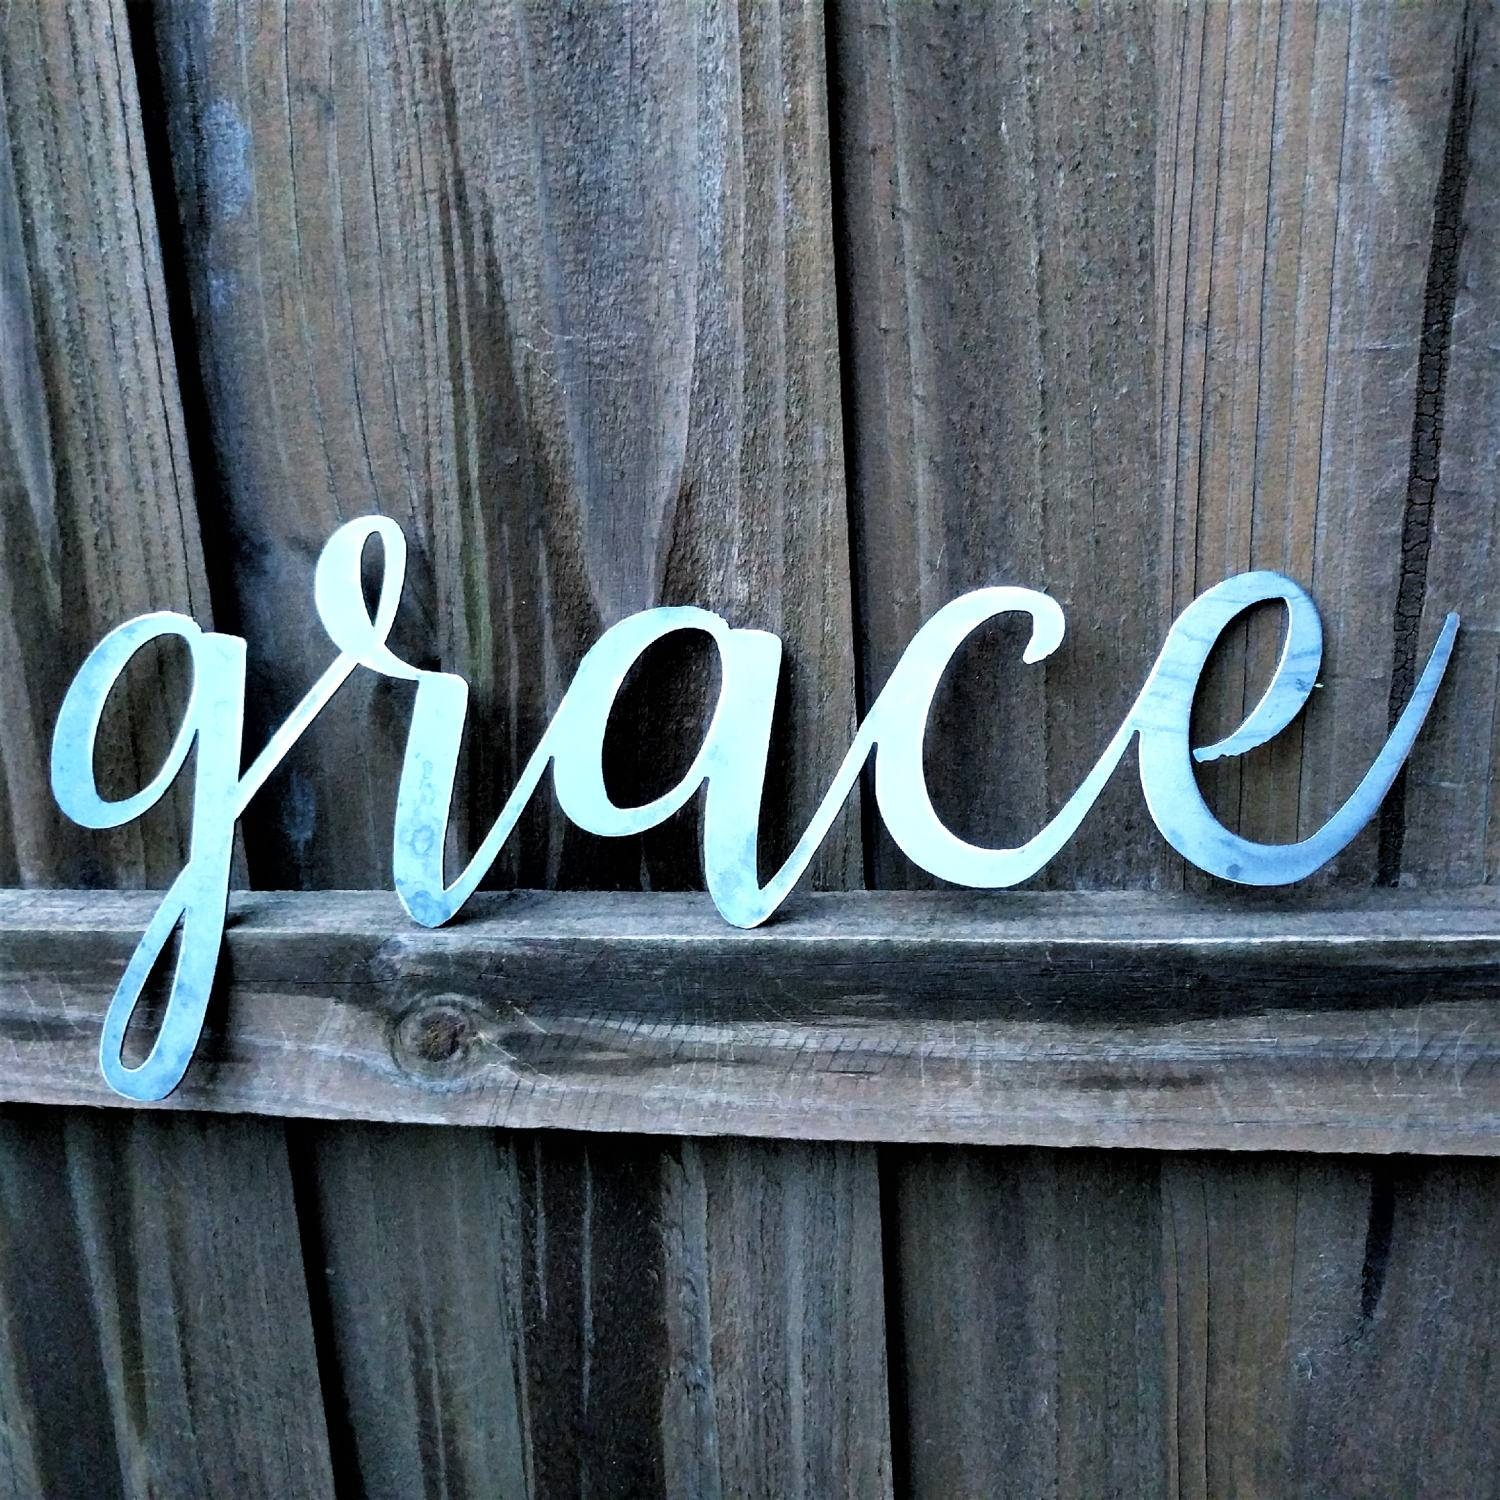 Grace Sign, Metal Farmhouse Sign, Metal Letters, Metal Wall Art In Best And Newest Metal Word Wall Art (View 8 of 20)